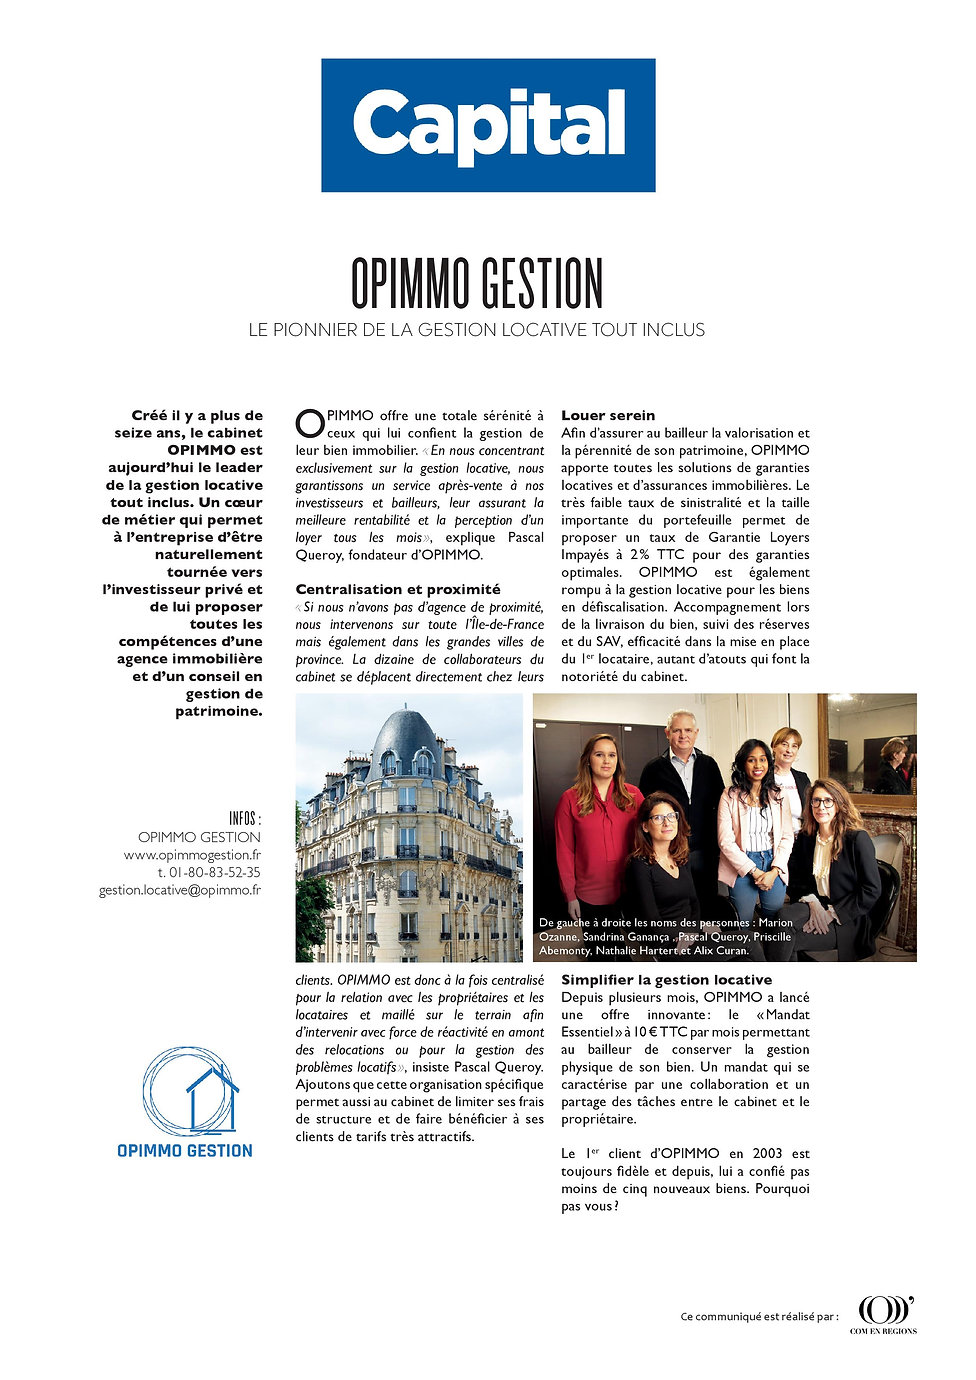 Article Presse Capital - Opimmo Gestion - 16 mai 2020